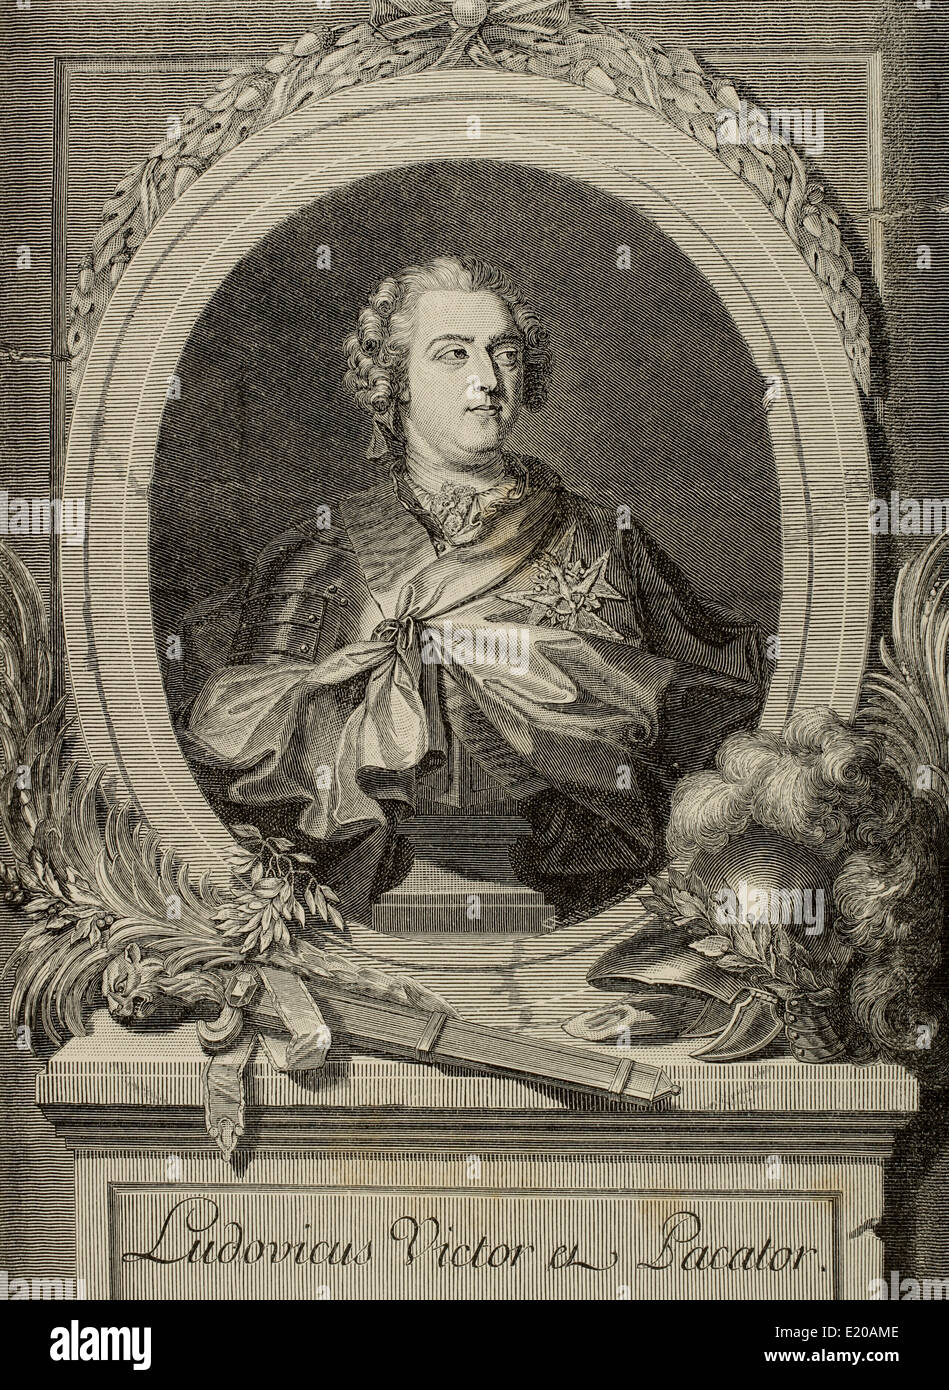 Louis XV of France (1710-1774). Louis the Beloved. King of France and Navarre. Engraving by Triebmann. Historia - Stock Image